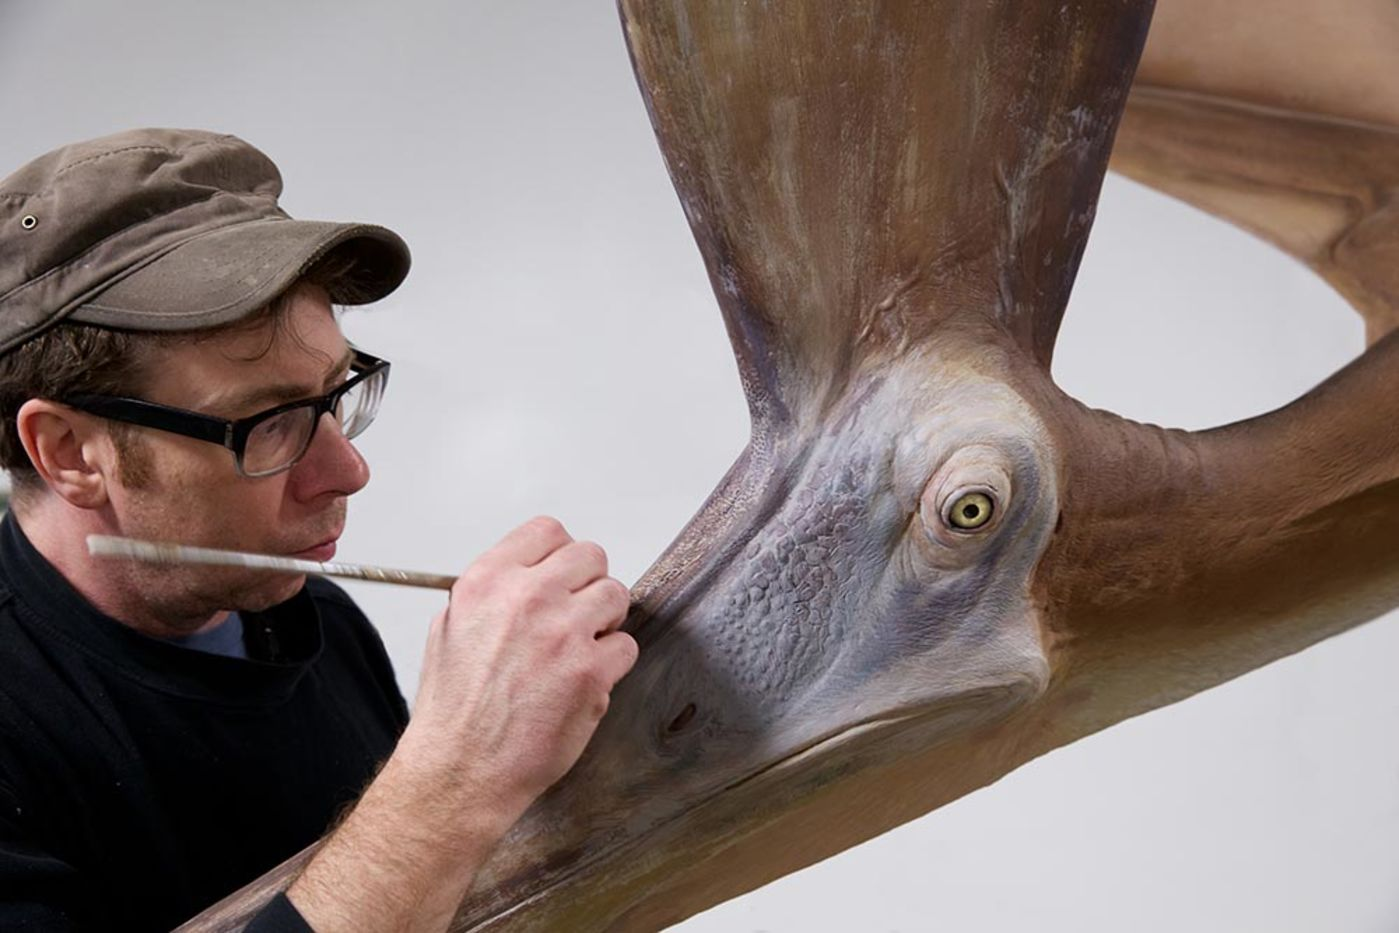 Close-up photo of a man painting the beak of a lifelike giant reptile